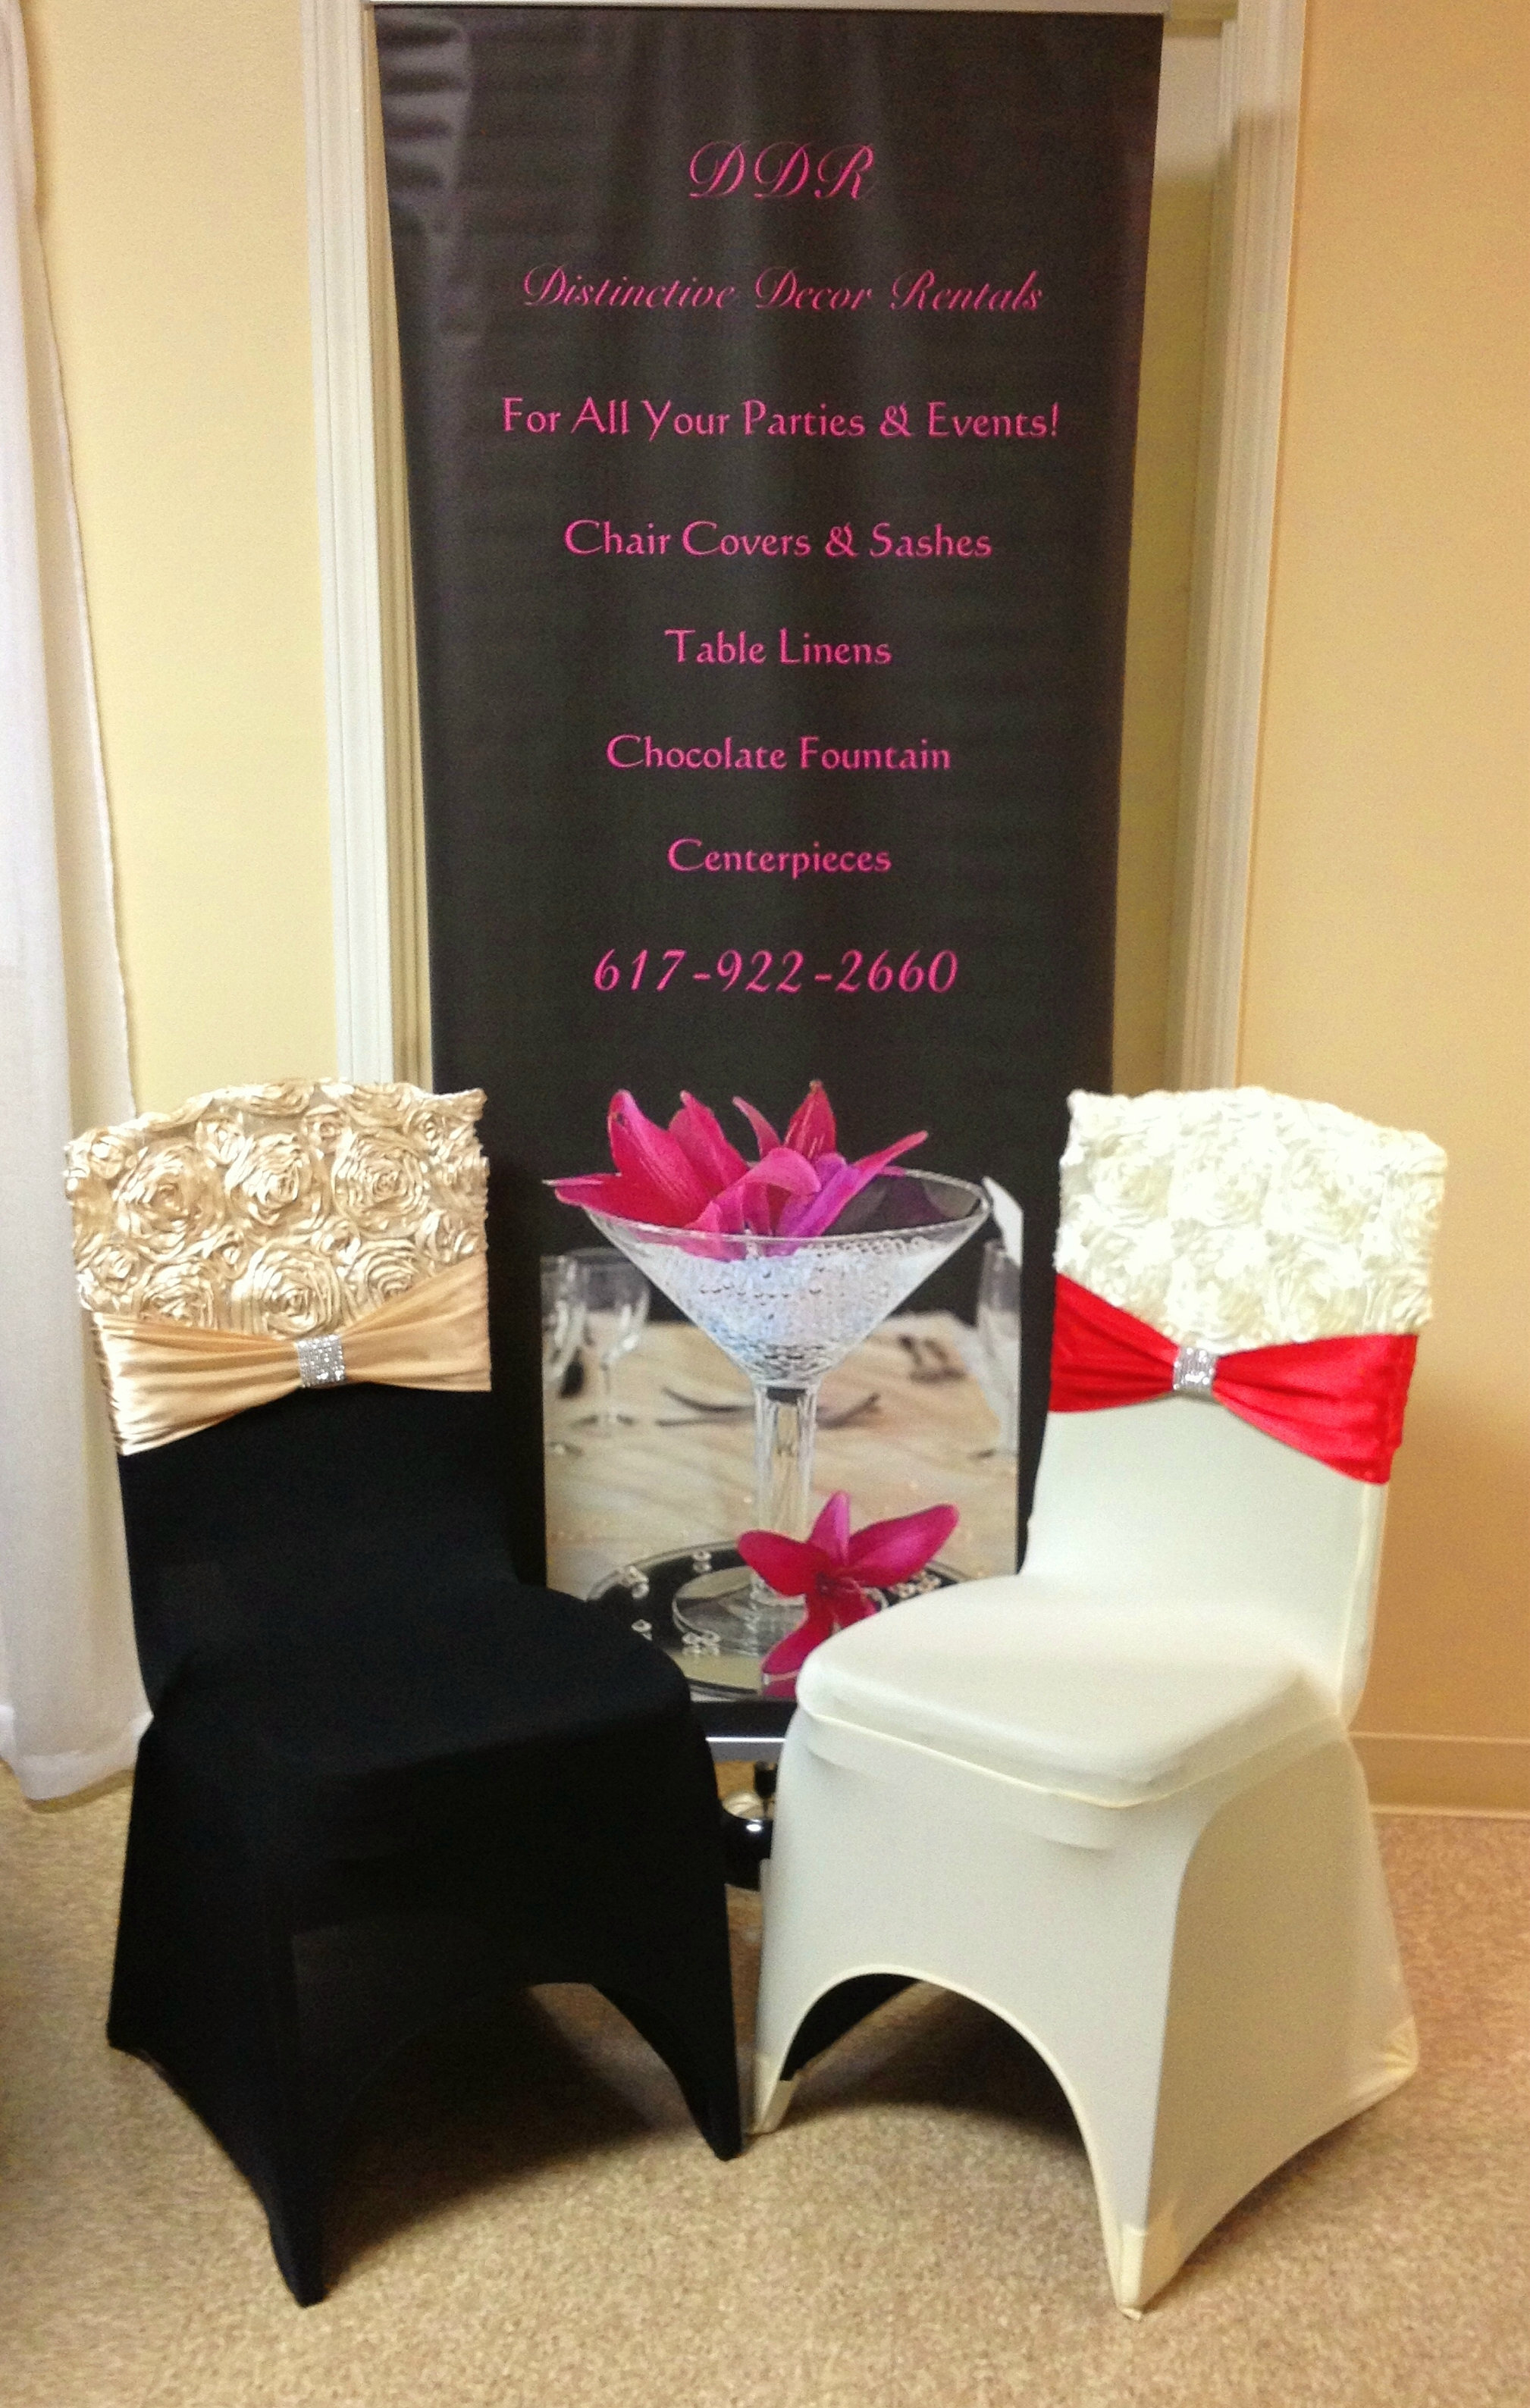 chair covers and sashes for rent purple kids distinctive decor rentals couture linens rosette